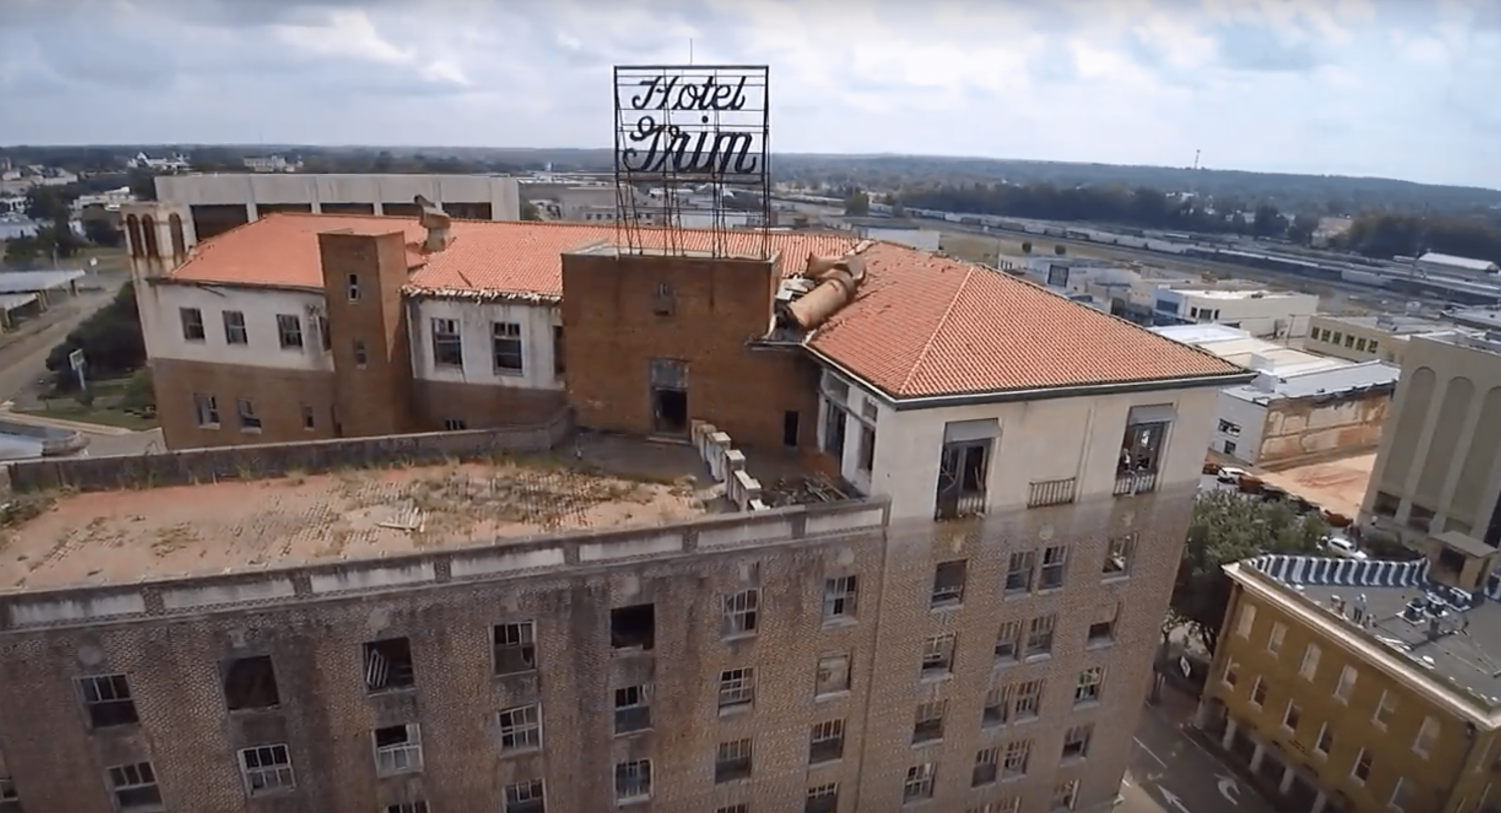 Downtown Texarkana is currently undergoing revitalization. One of those projects is the Grimm Hotel which will be converted into apartment units.